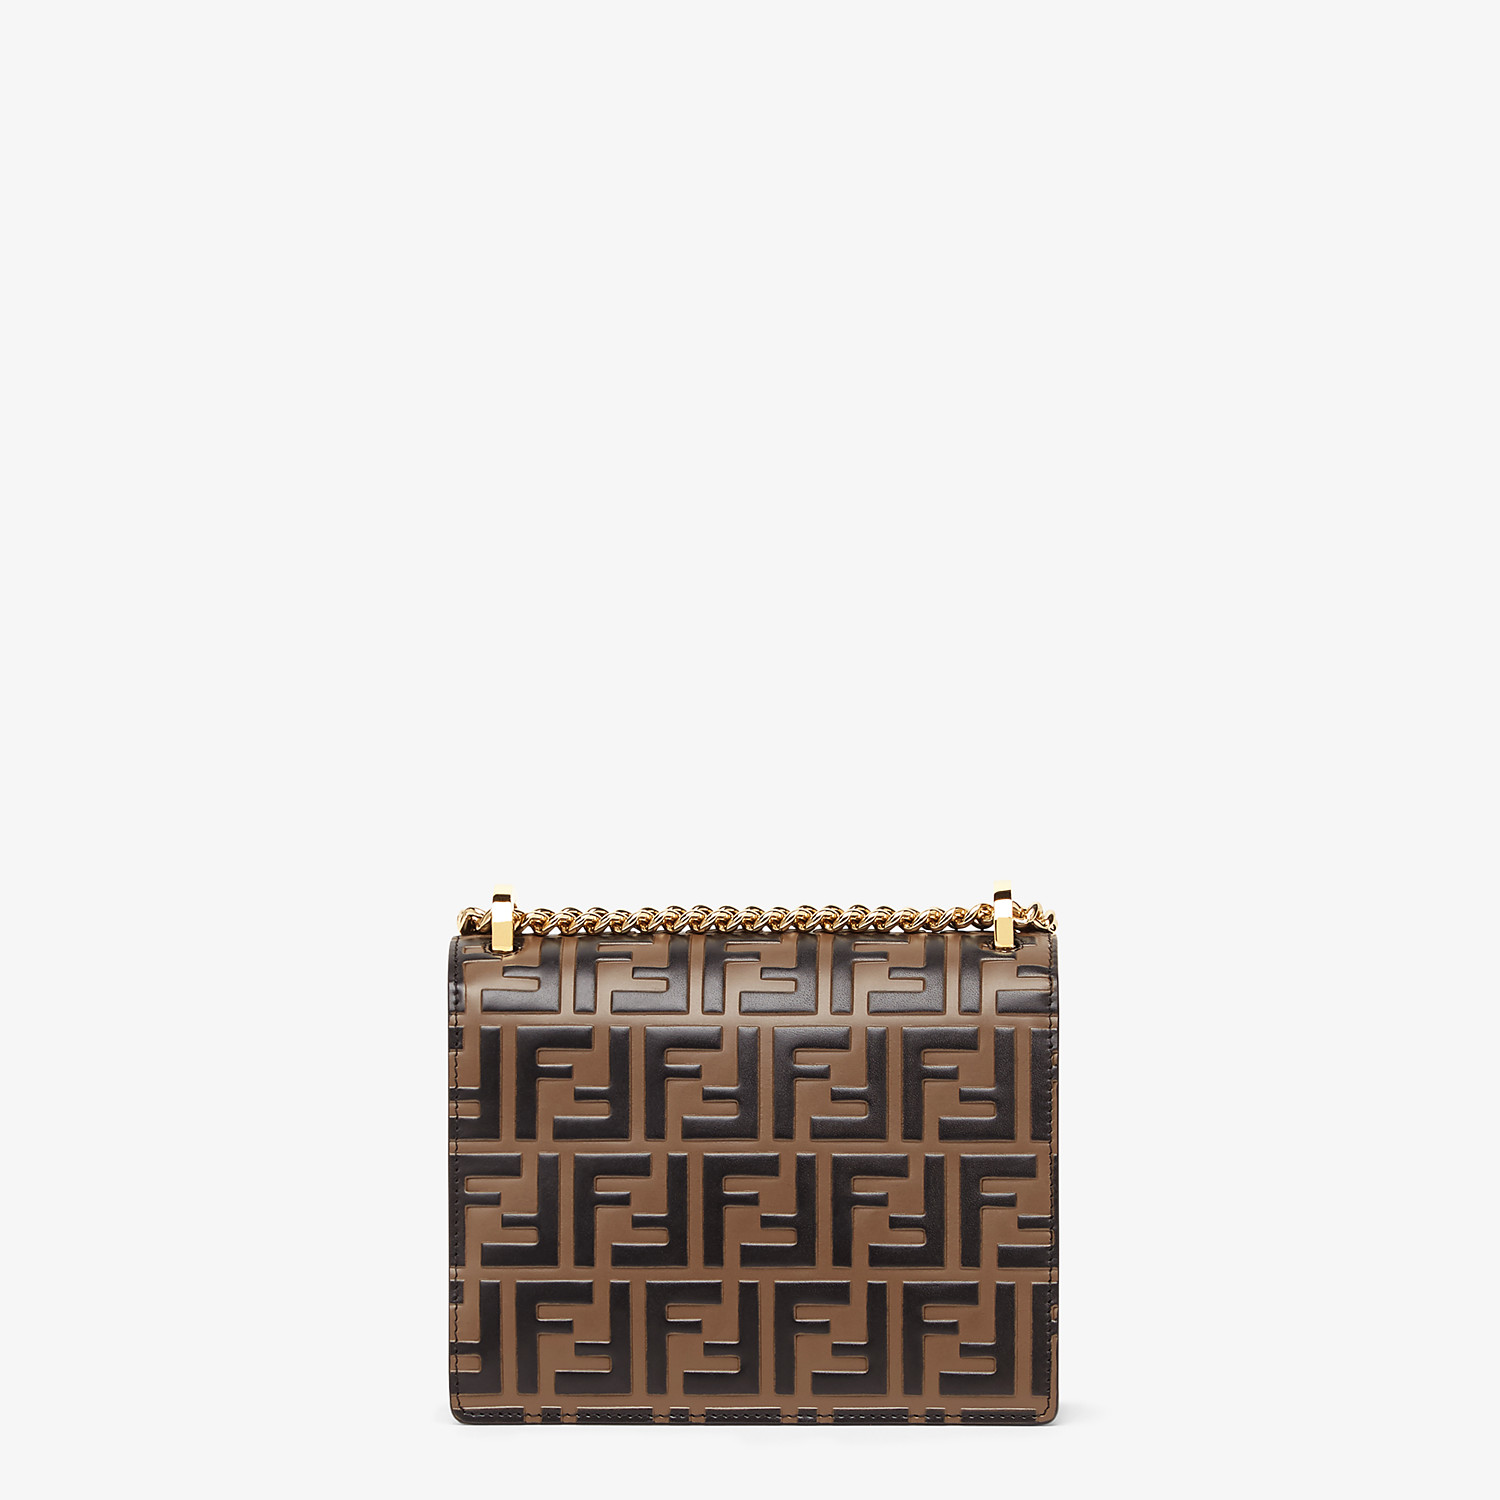 FENDI KAN U SMALL - Brown leather mini-bag - view 3 detail